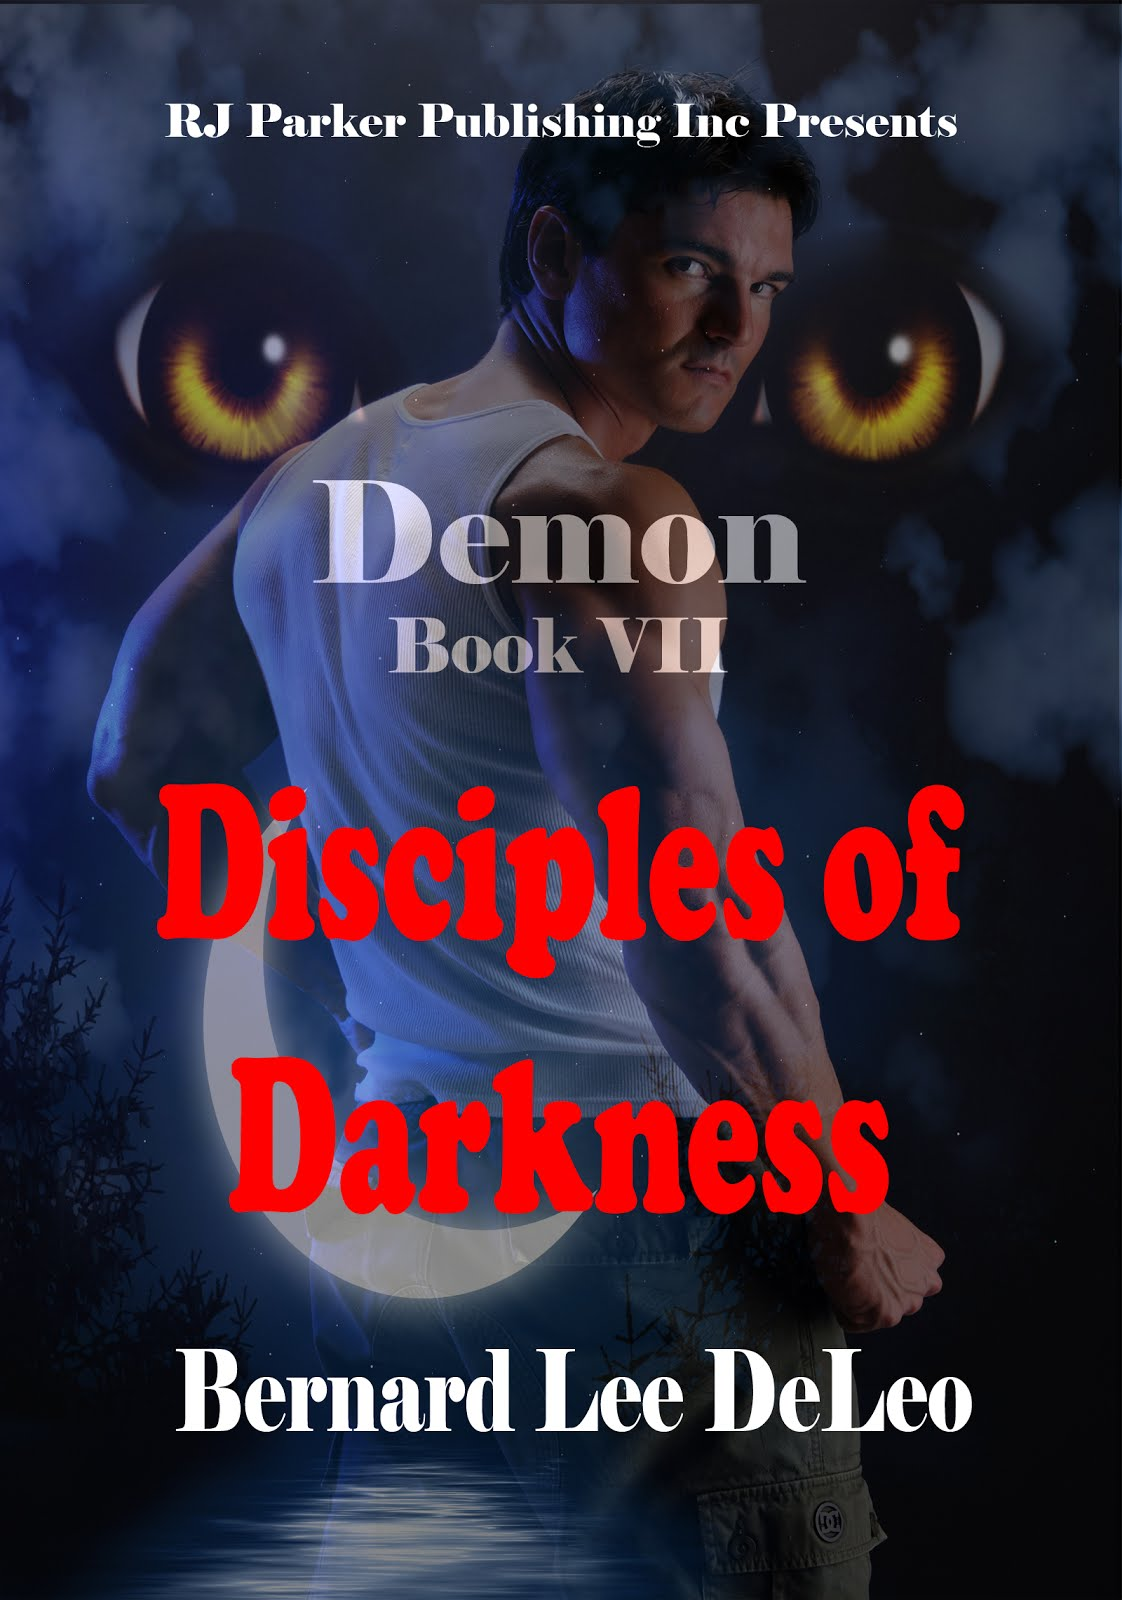 Demon Book VII: Disciples of Darkness